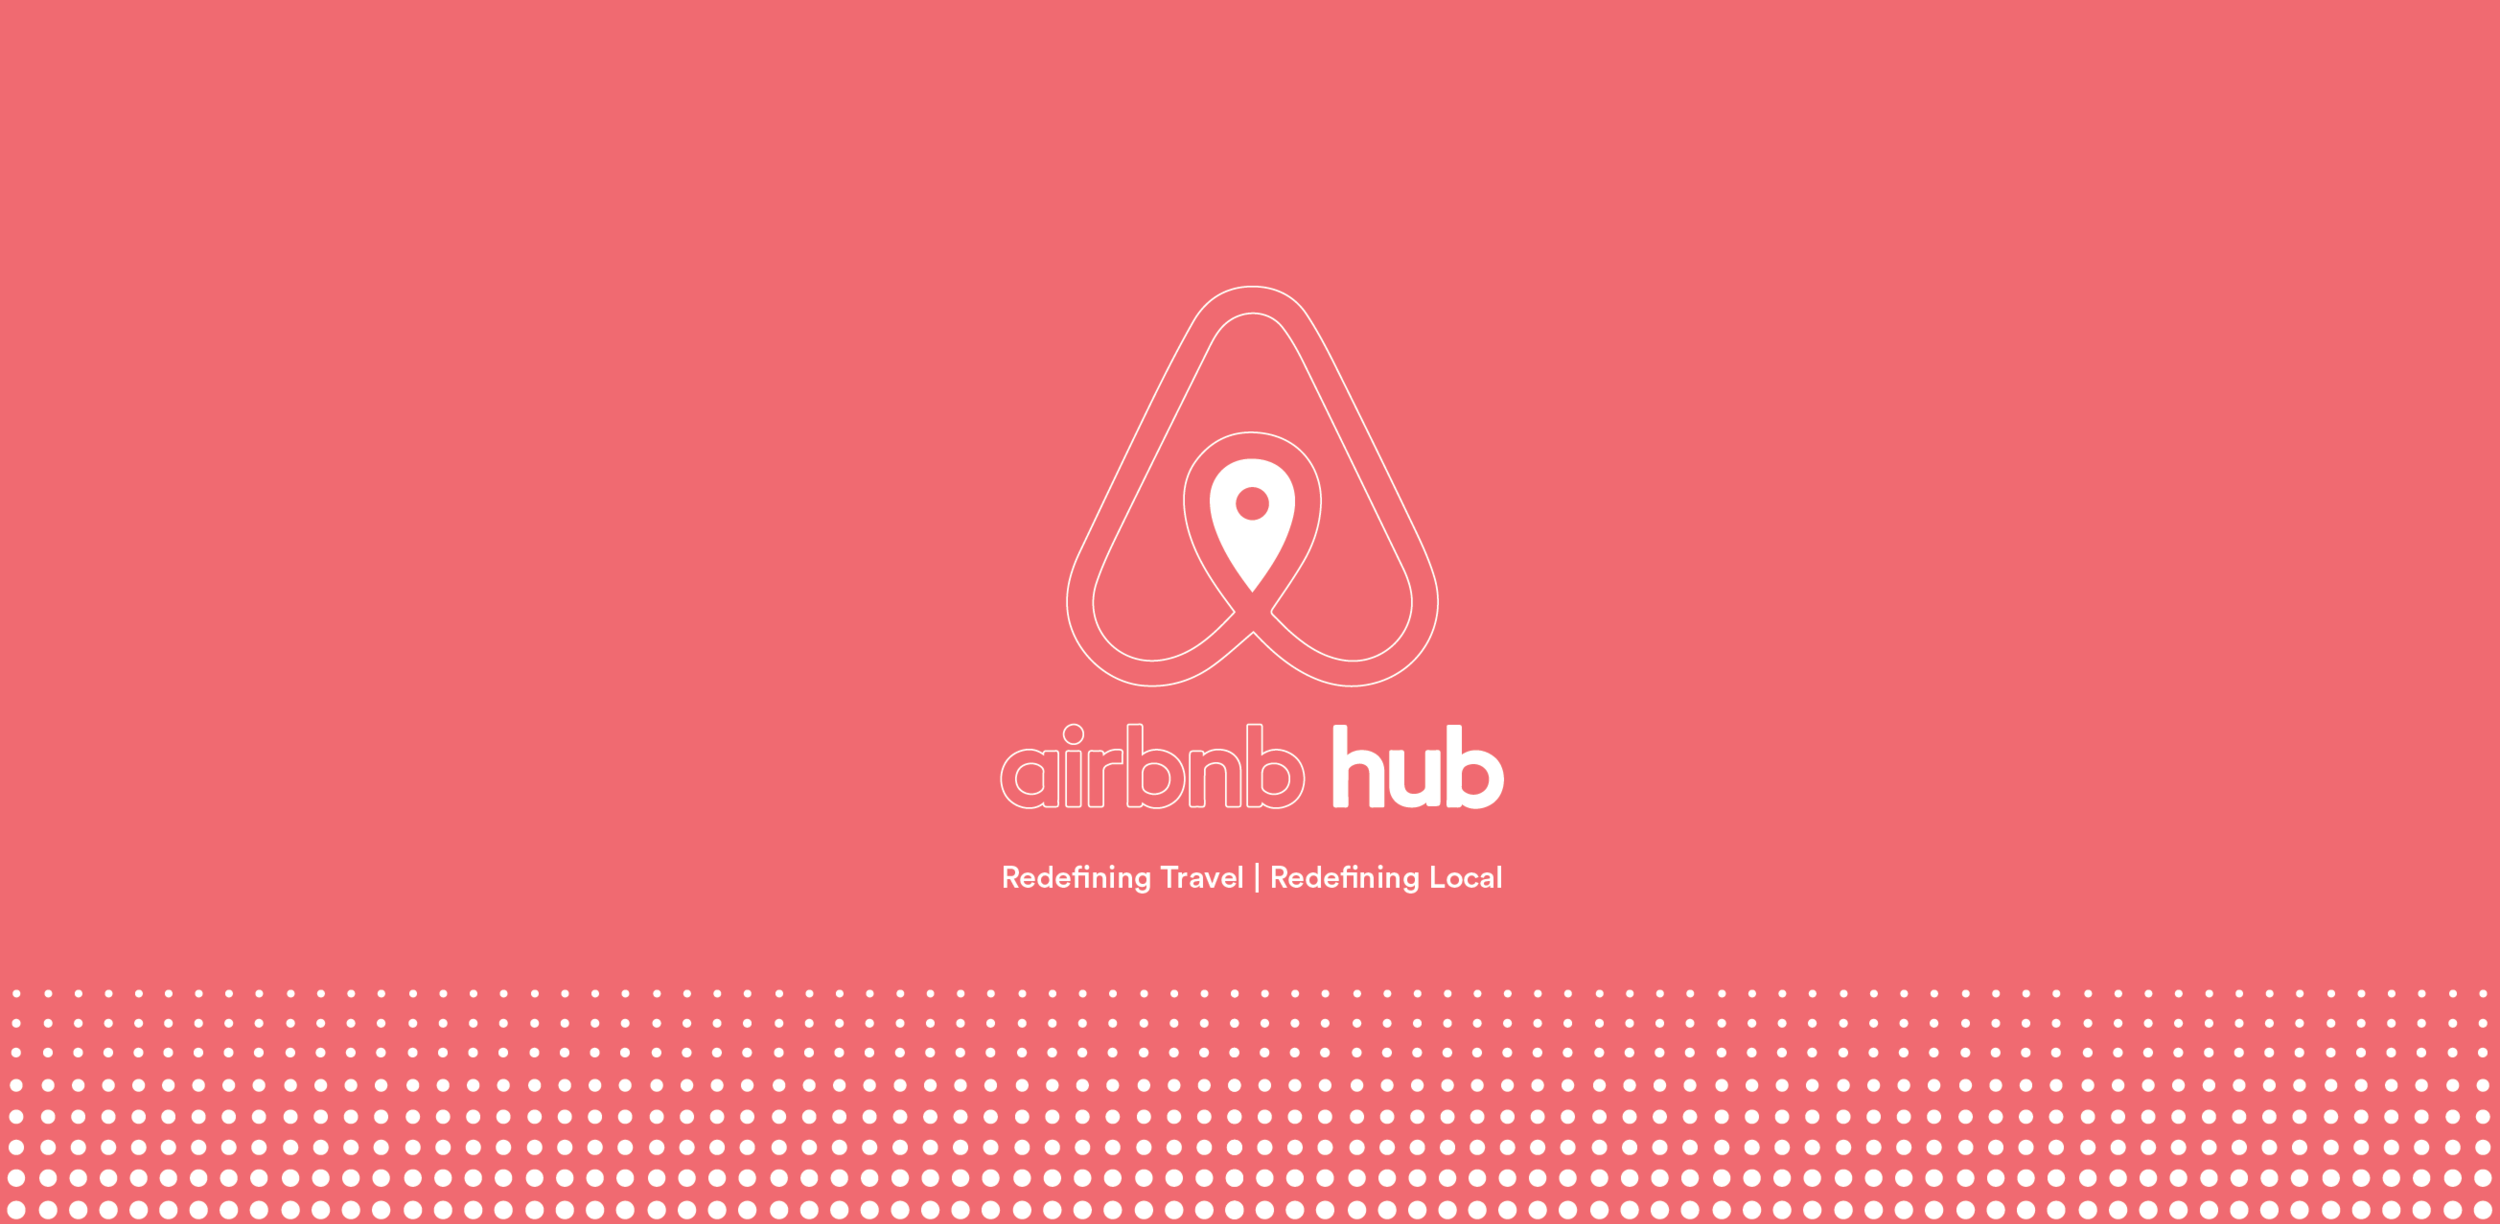 AIRBNB HUBS  is a hypothetical brand extension geared towards expanding the product offering of the online house sharing company in order to capture new audiences and solidify its current customer base. The main concept behind the AIRBNB HUB is to bring the digital product that Airbnb offers and create a physical embodiment of the brand philosophy, mission, and its offerings.